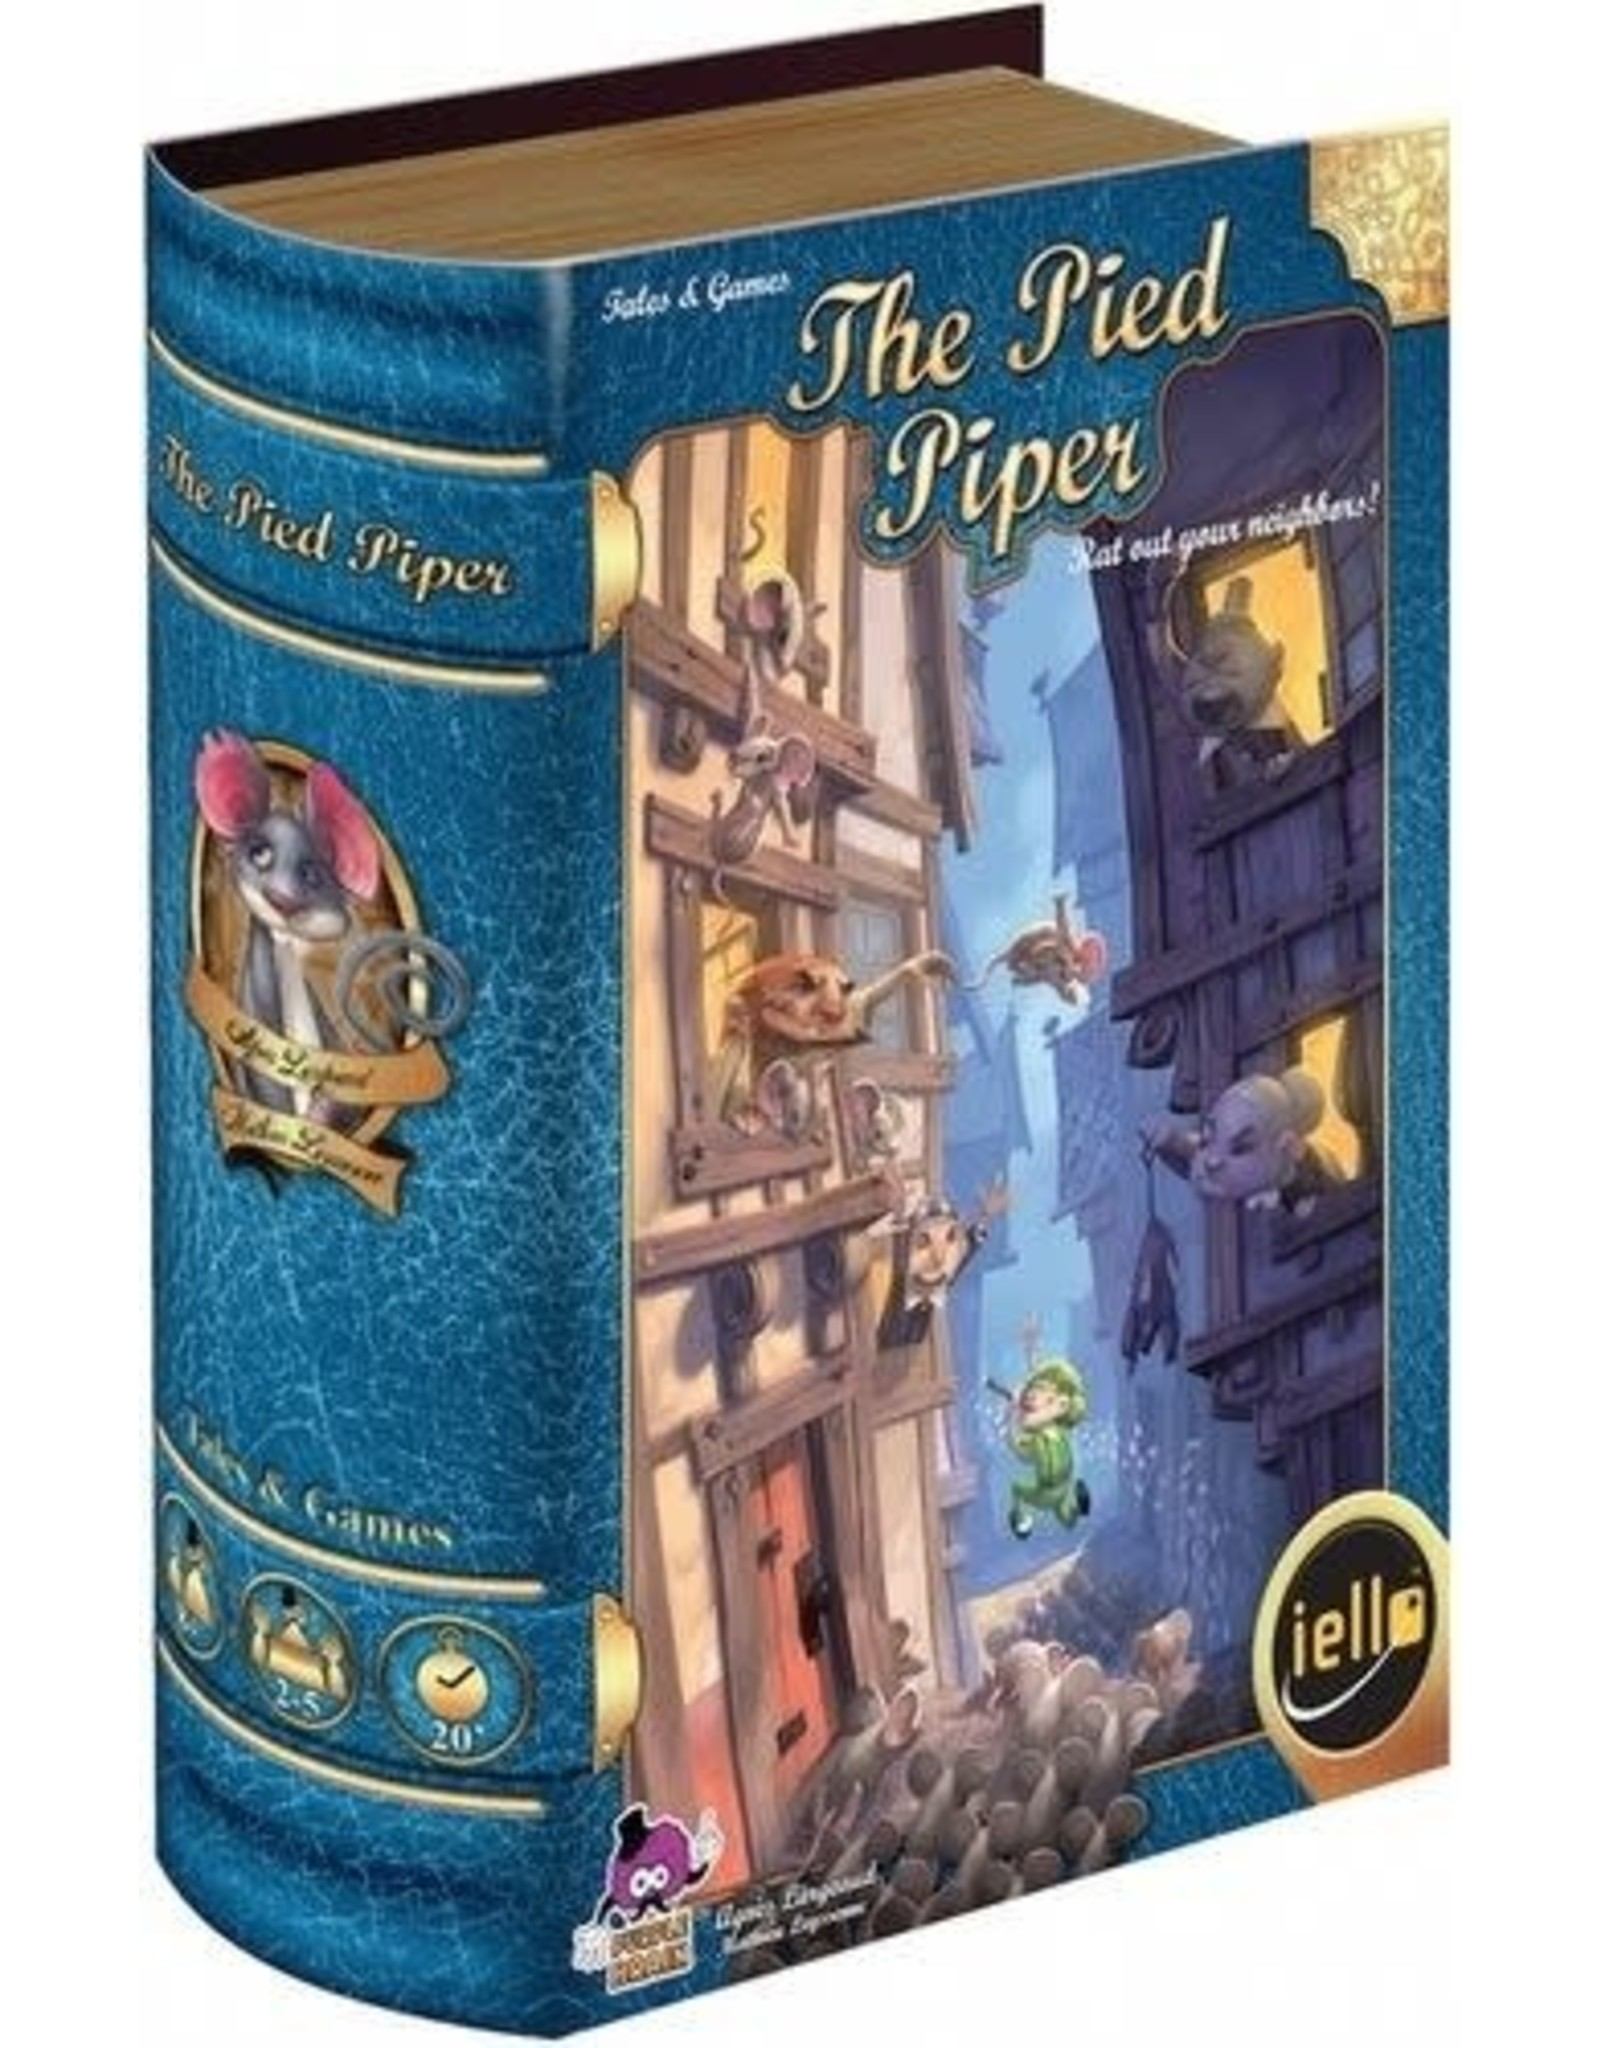 Tales & Games #6: The Pied Piper